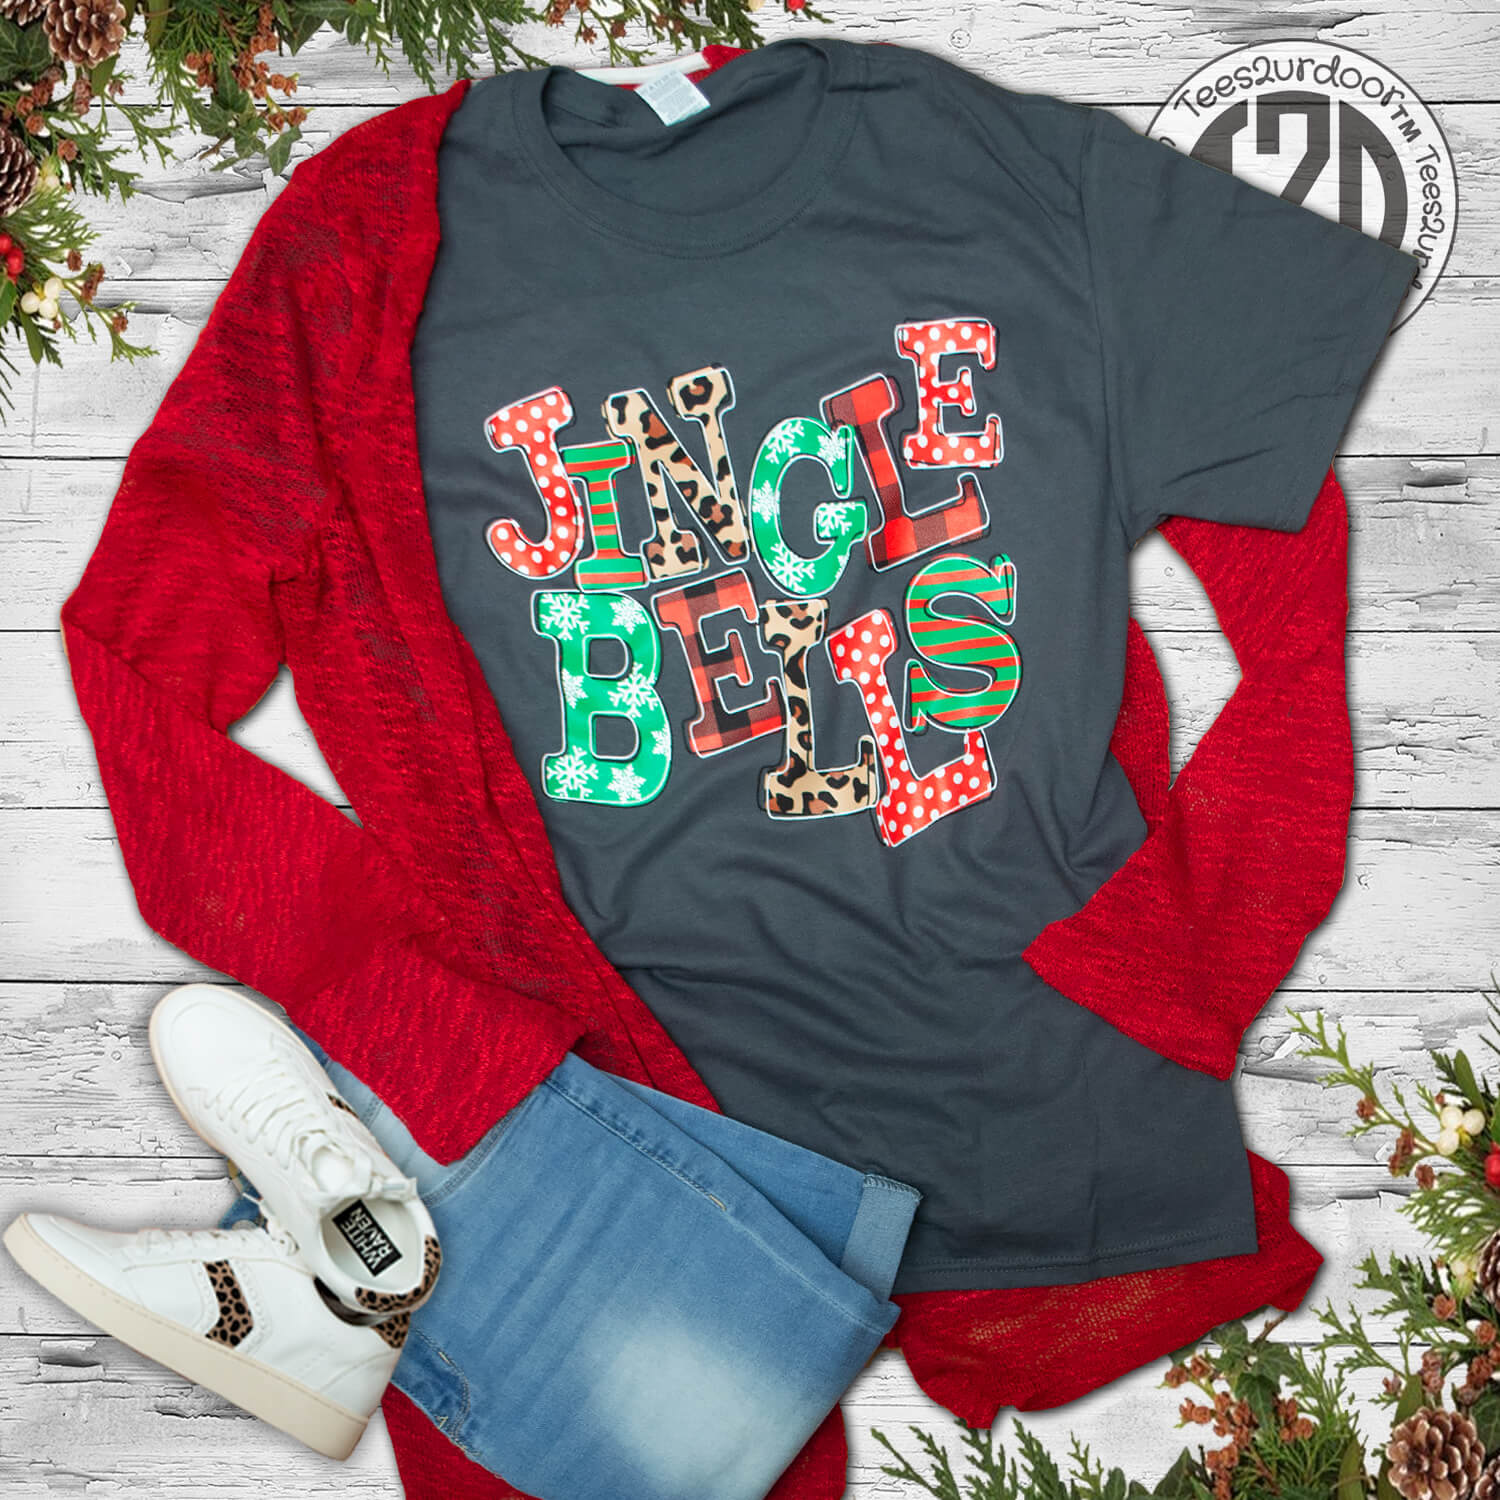 Jingle Bells Christmas T-Shirt Flat